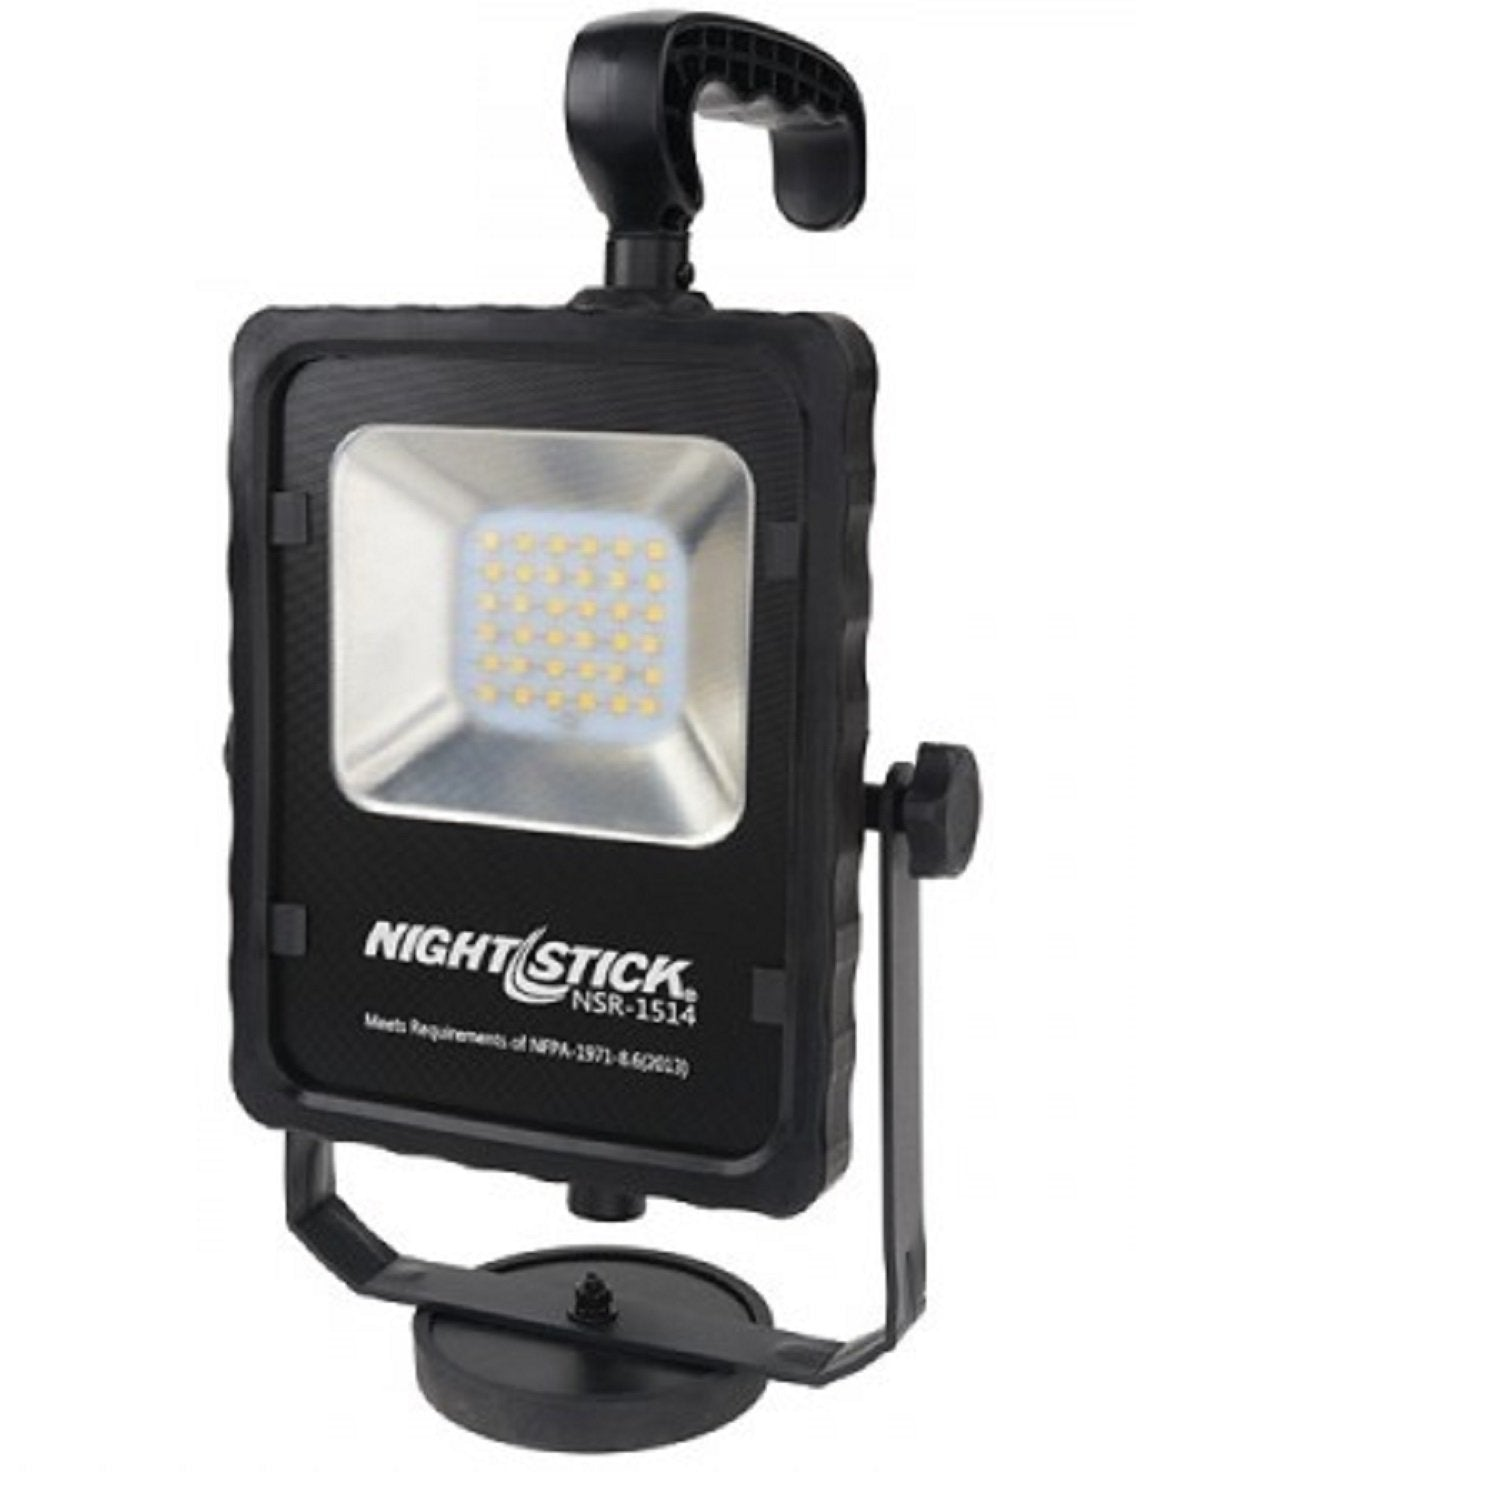 Nightstick Rechargeable LED Area Light with Magnetic Base Tactical Gear Australia Supplier Distributor Dealer